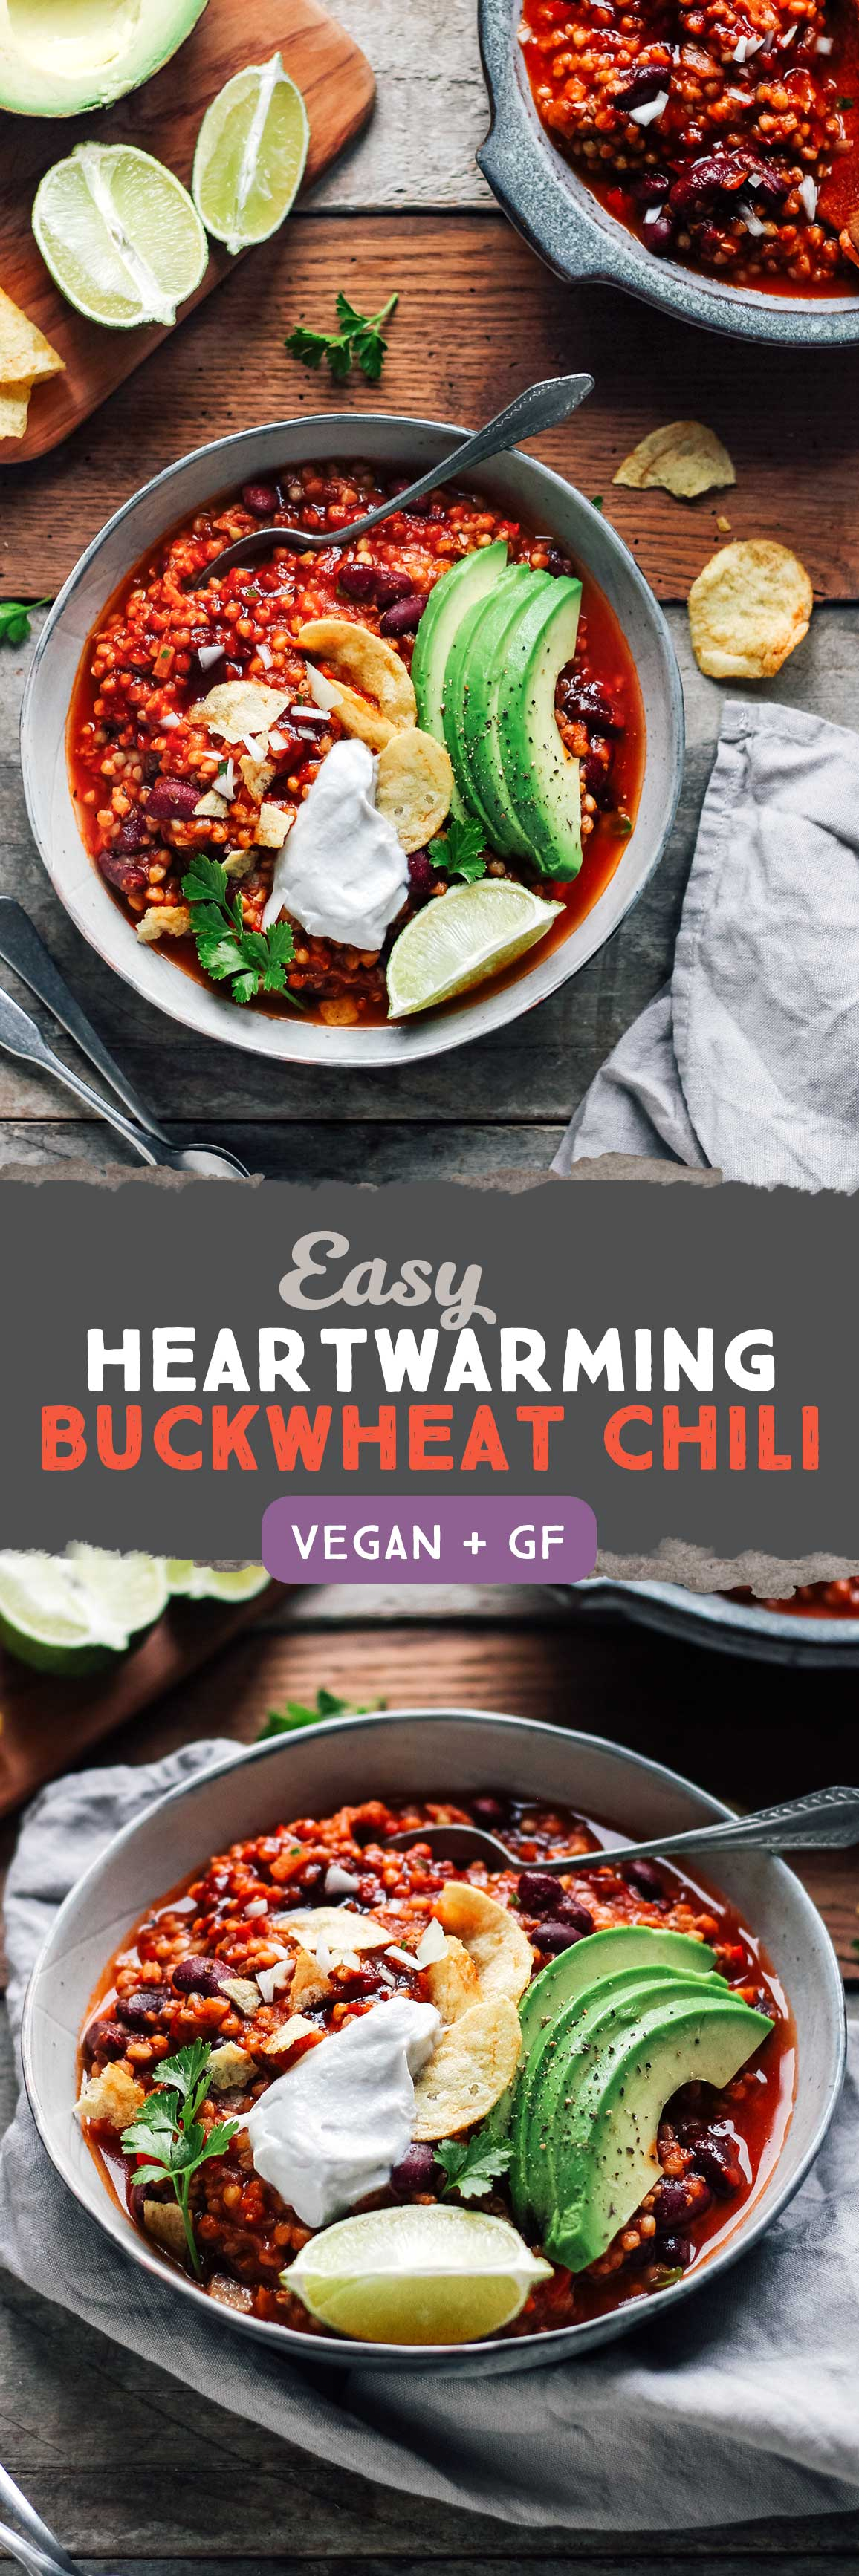 Easy Heartwarming Buckwheat Chili